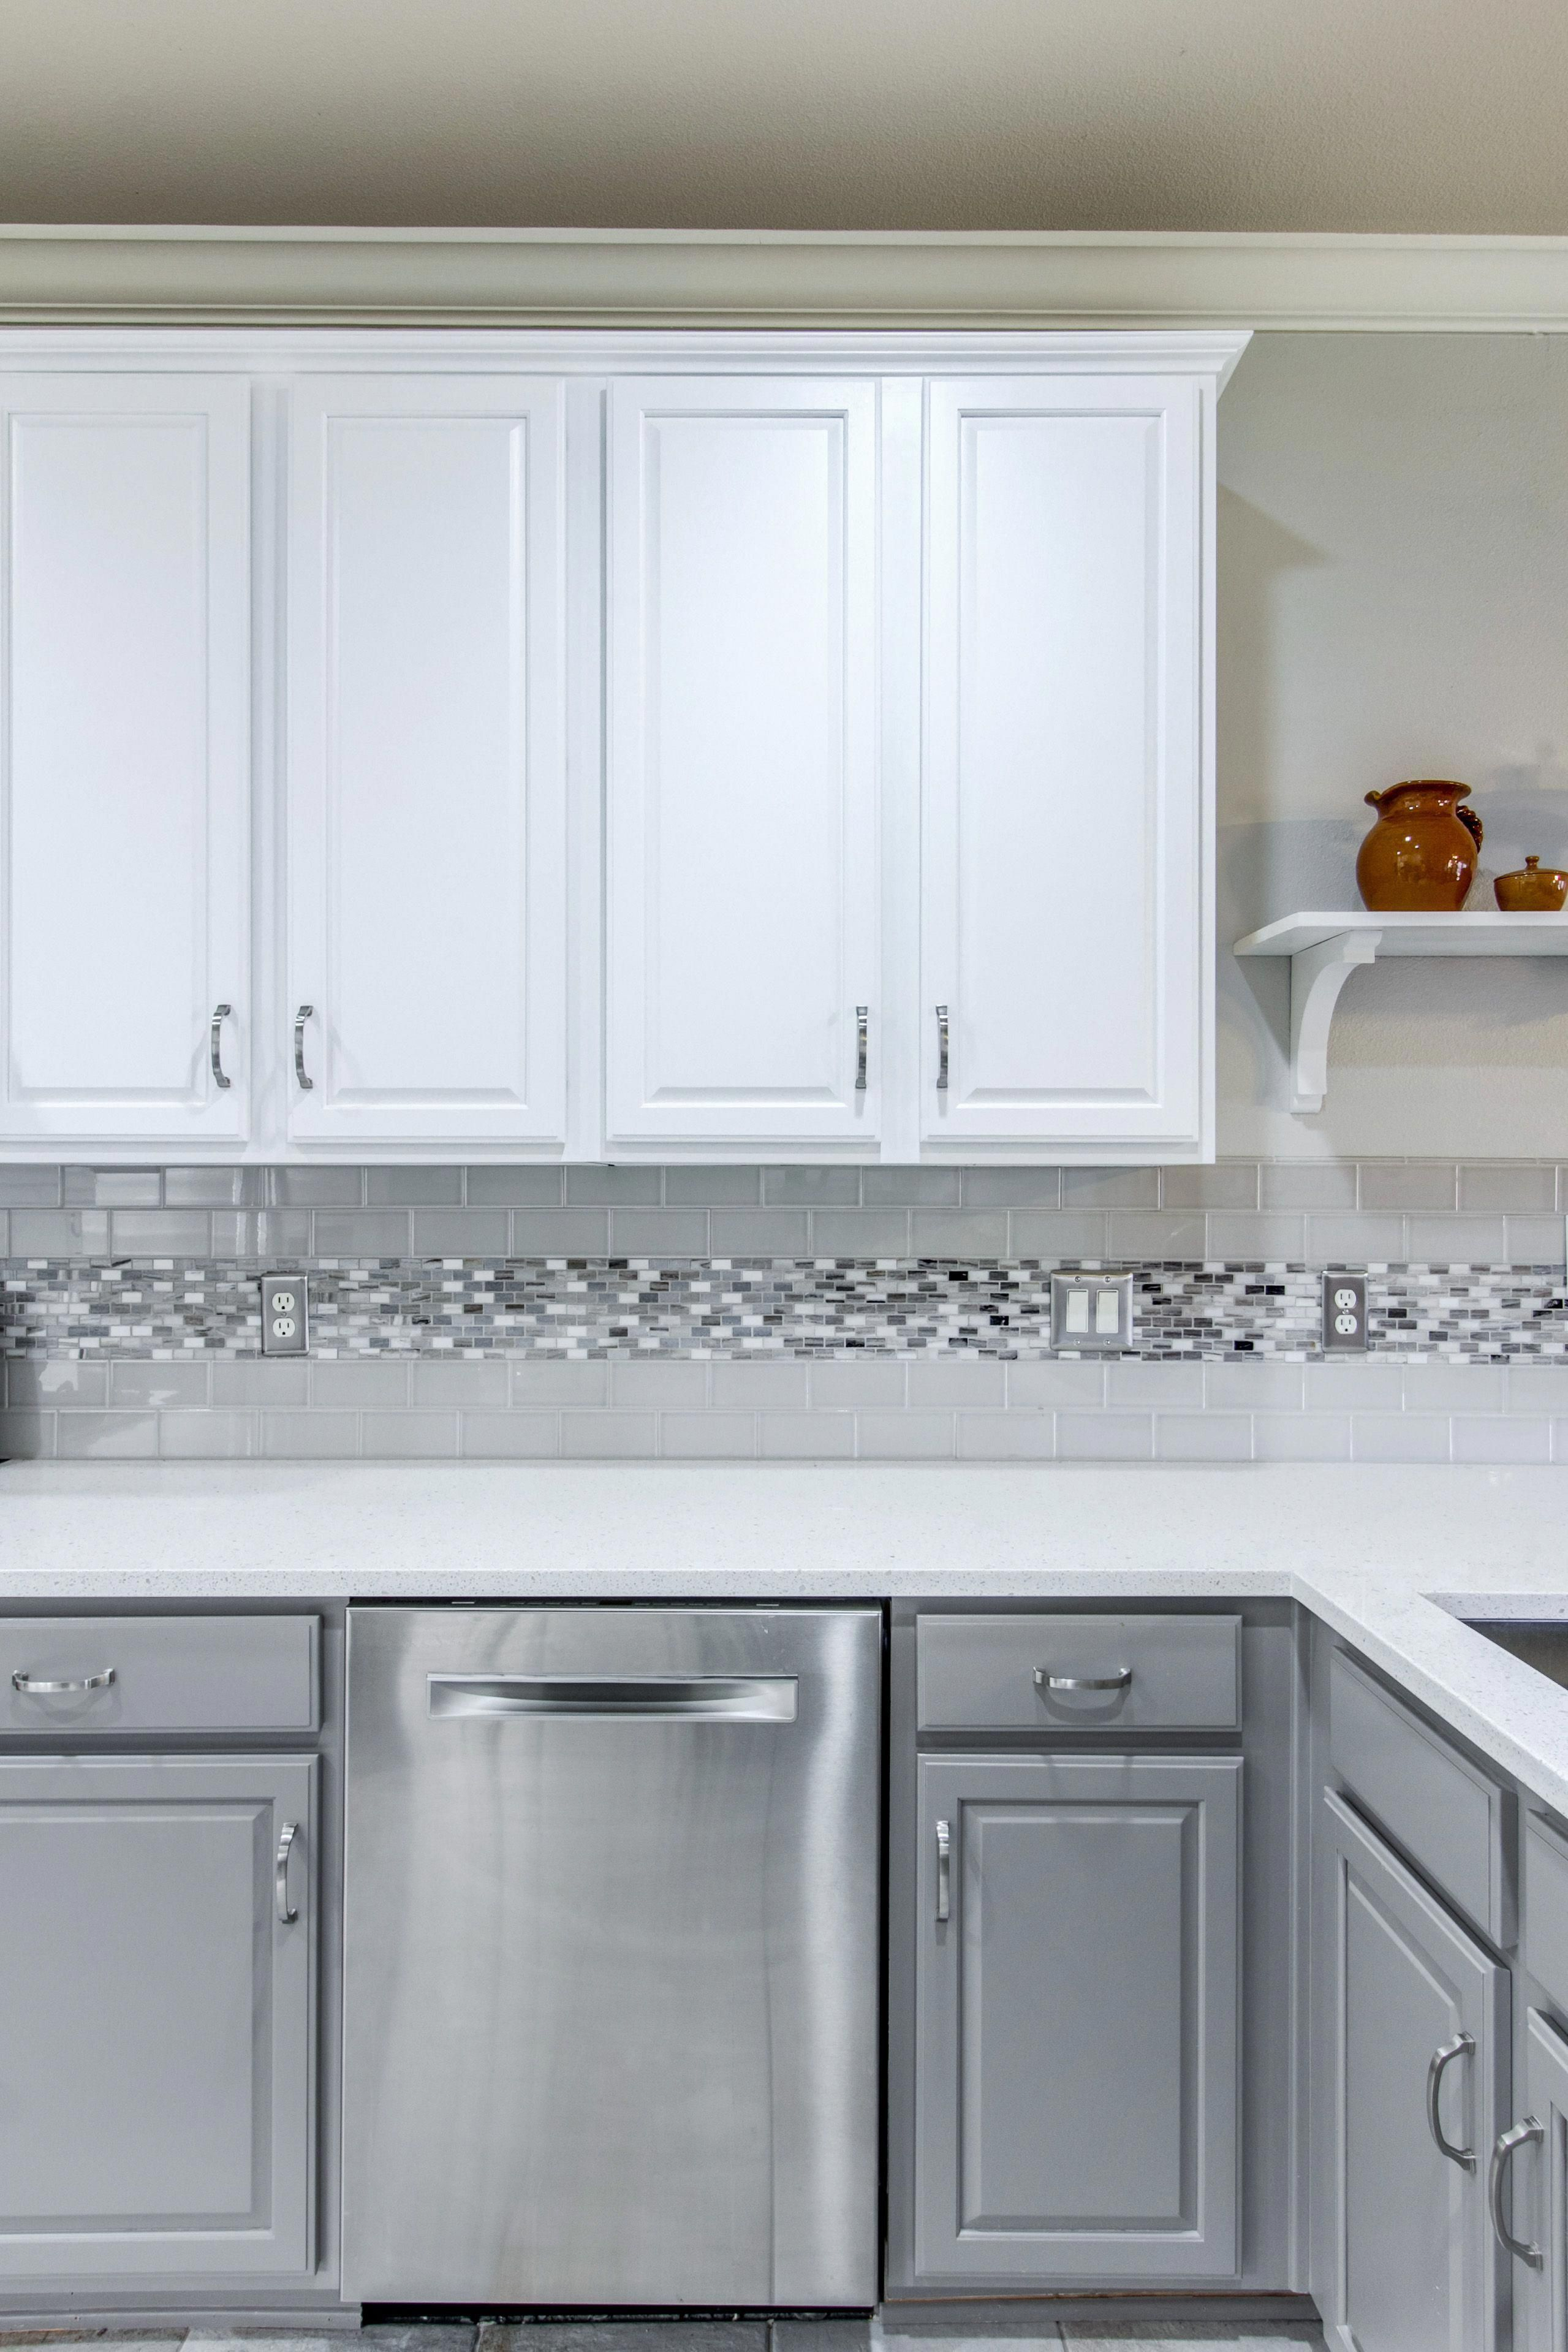 10 Best Ways To Install New Kitchen Backsplash Easy Tips To